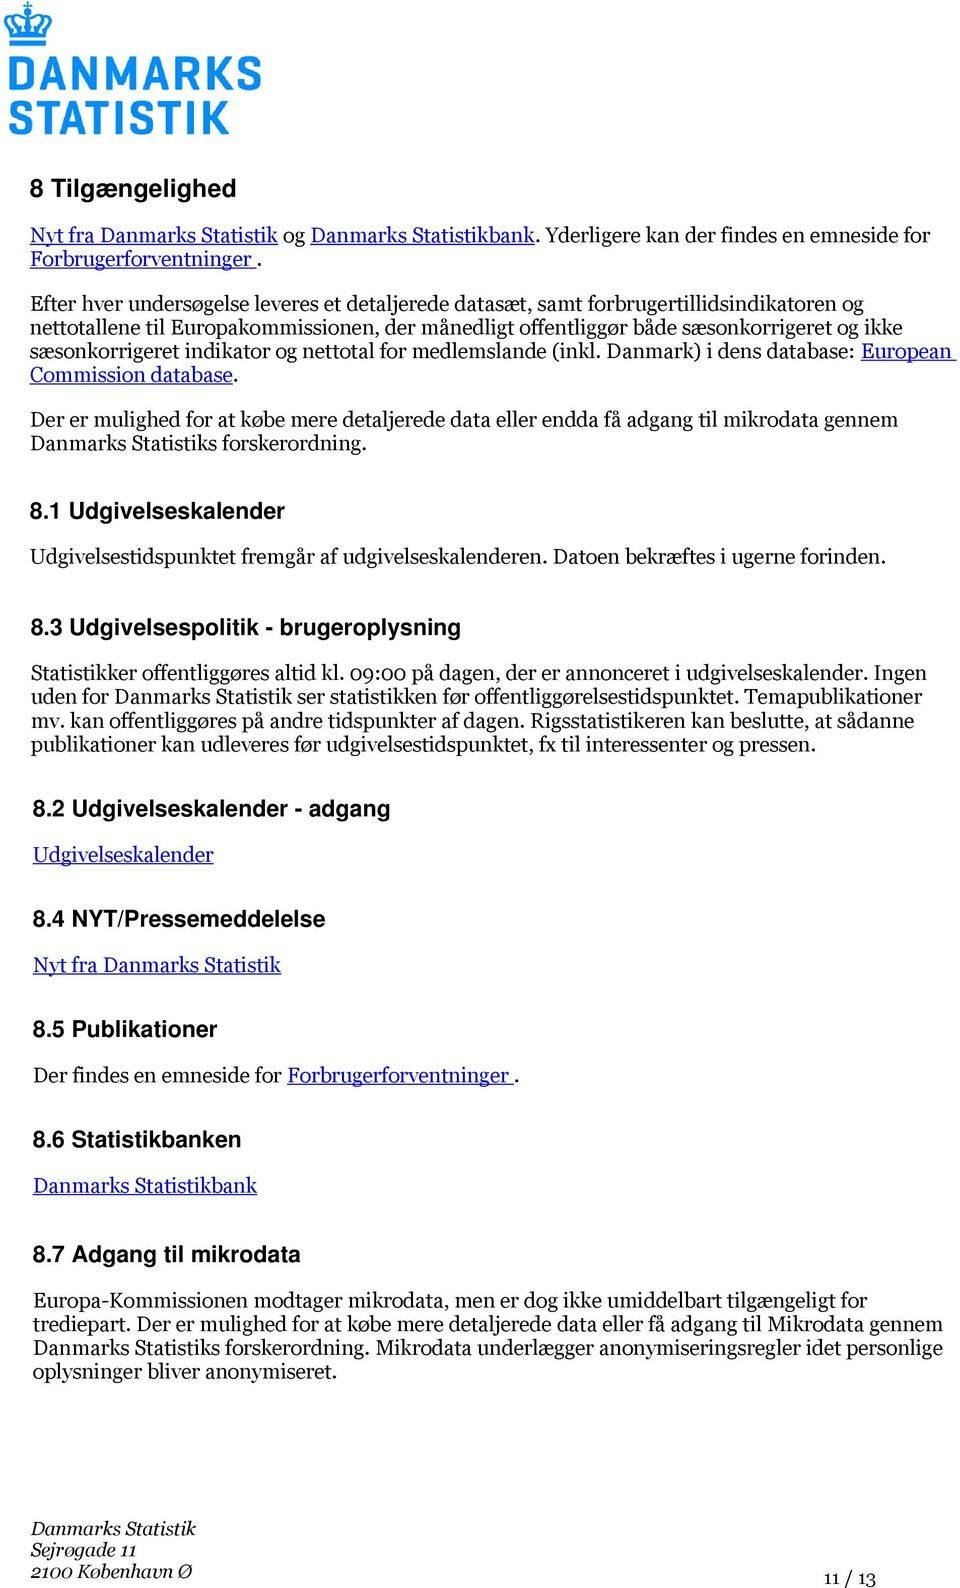 sæsonkorrigeret indikator og nettotal for medlemslande (inkl. Danmark) i dens database: European Commission database.